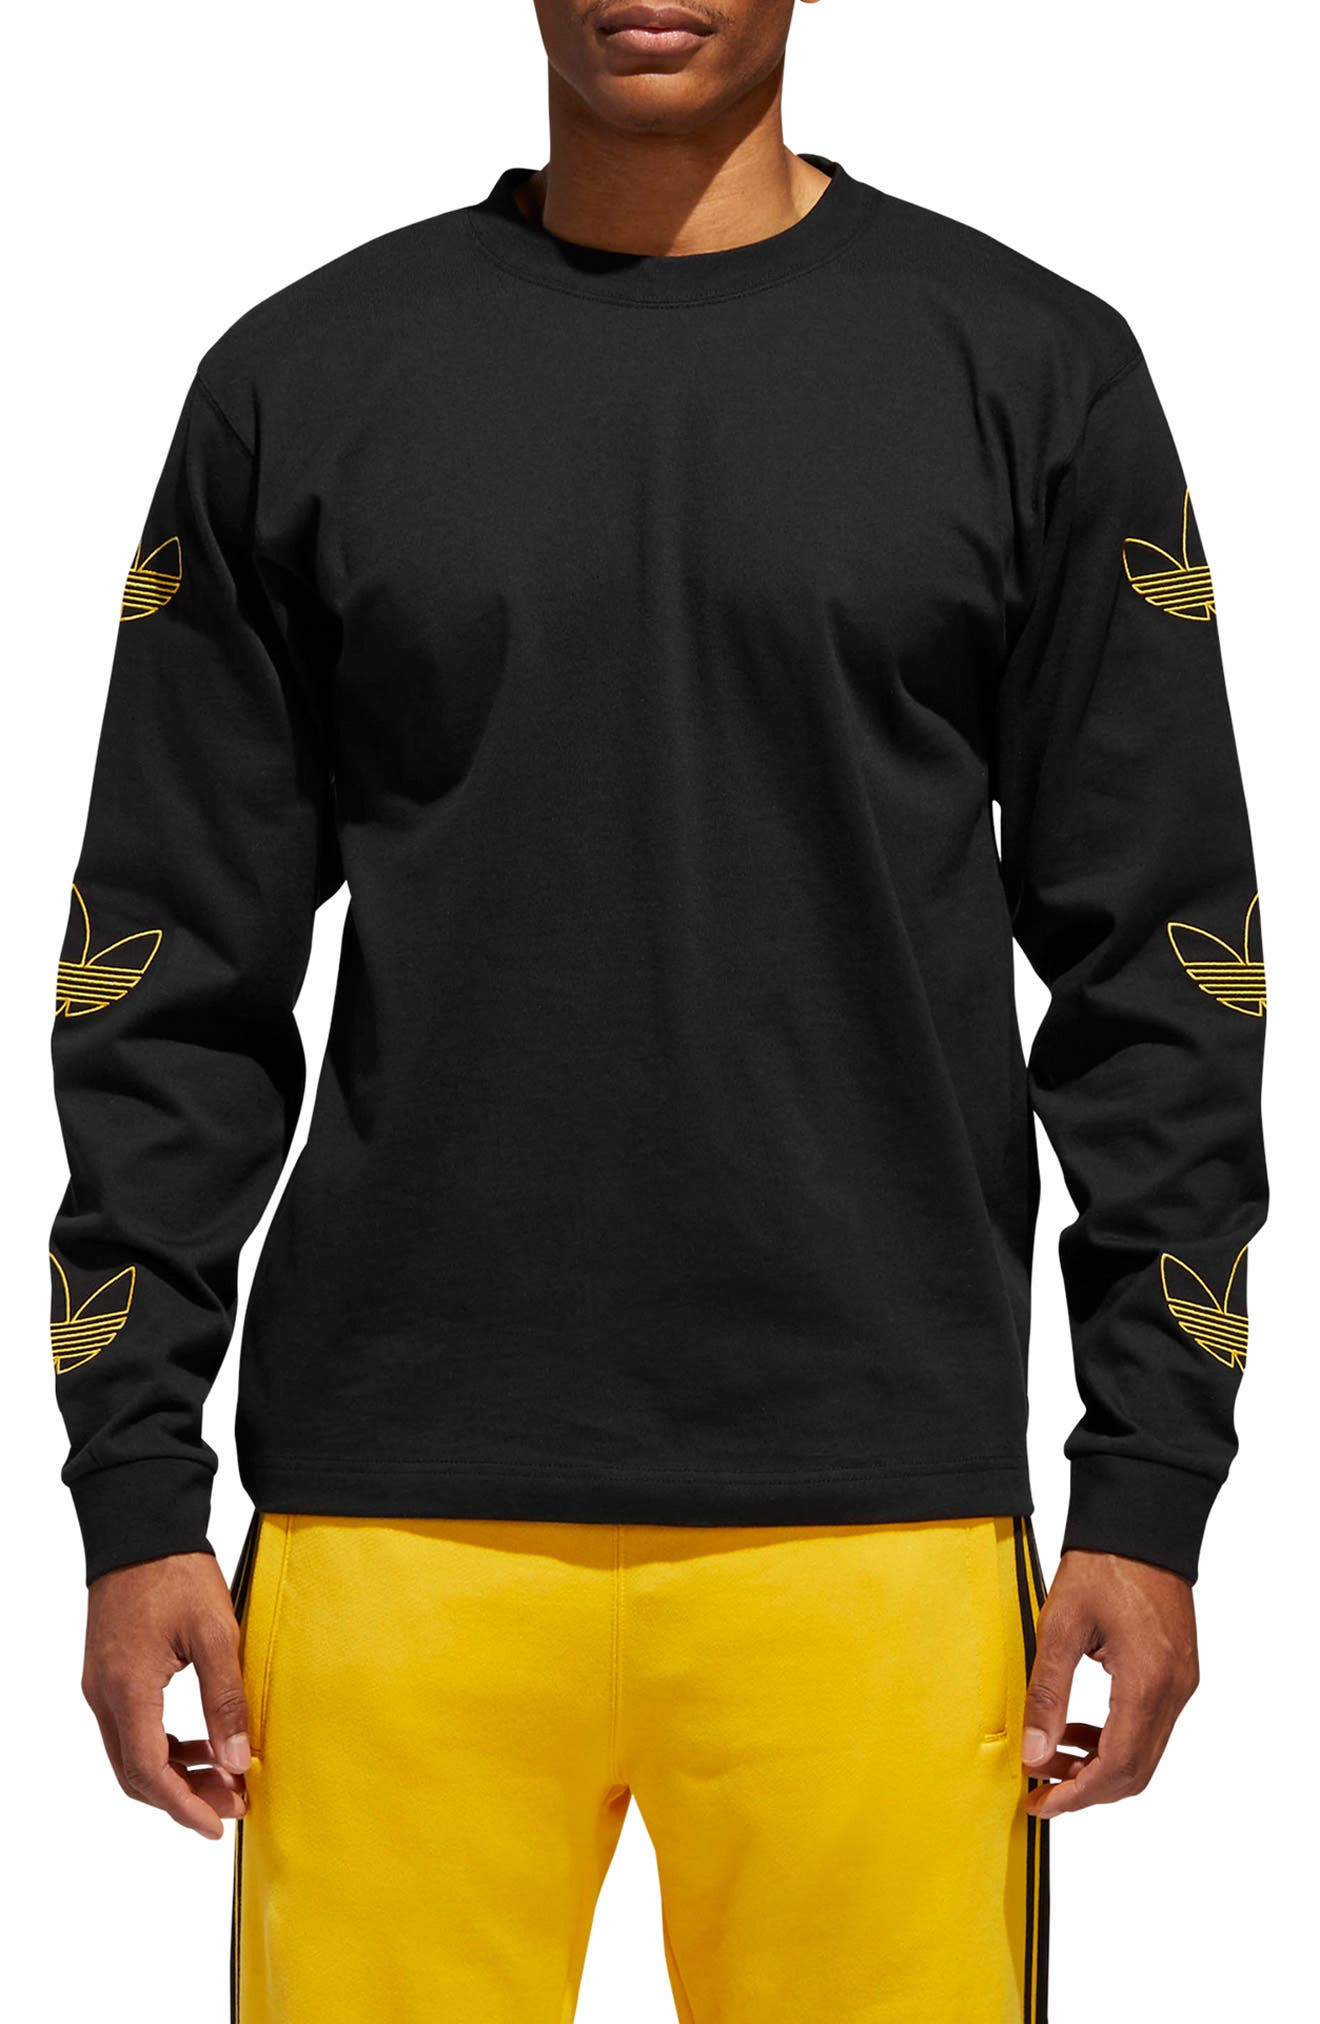 ADIDAS ORIGINALS Embroidered Trefoil Long Sleeve T-Shirt, Main, color, BLACK/ WHITE